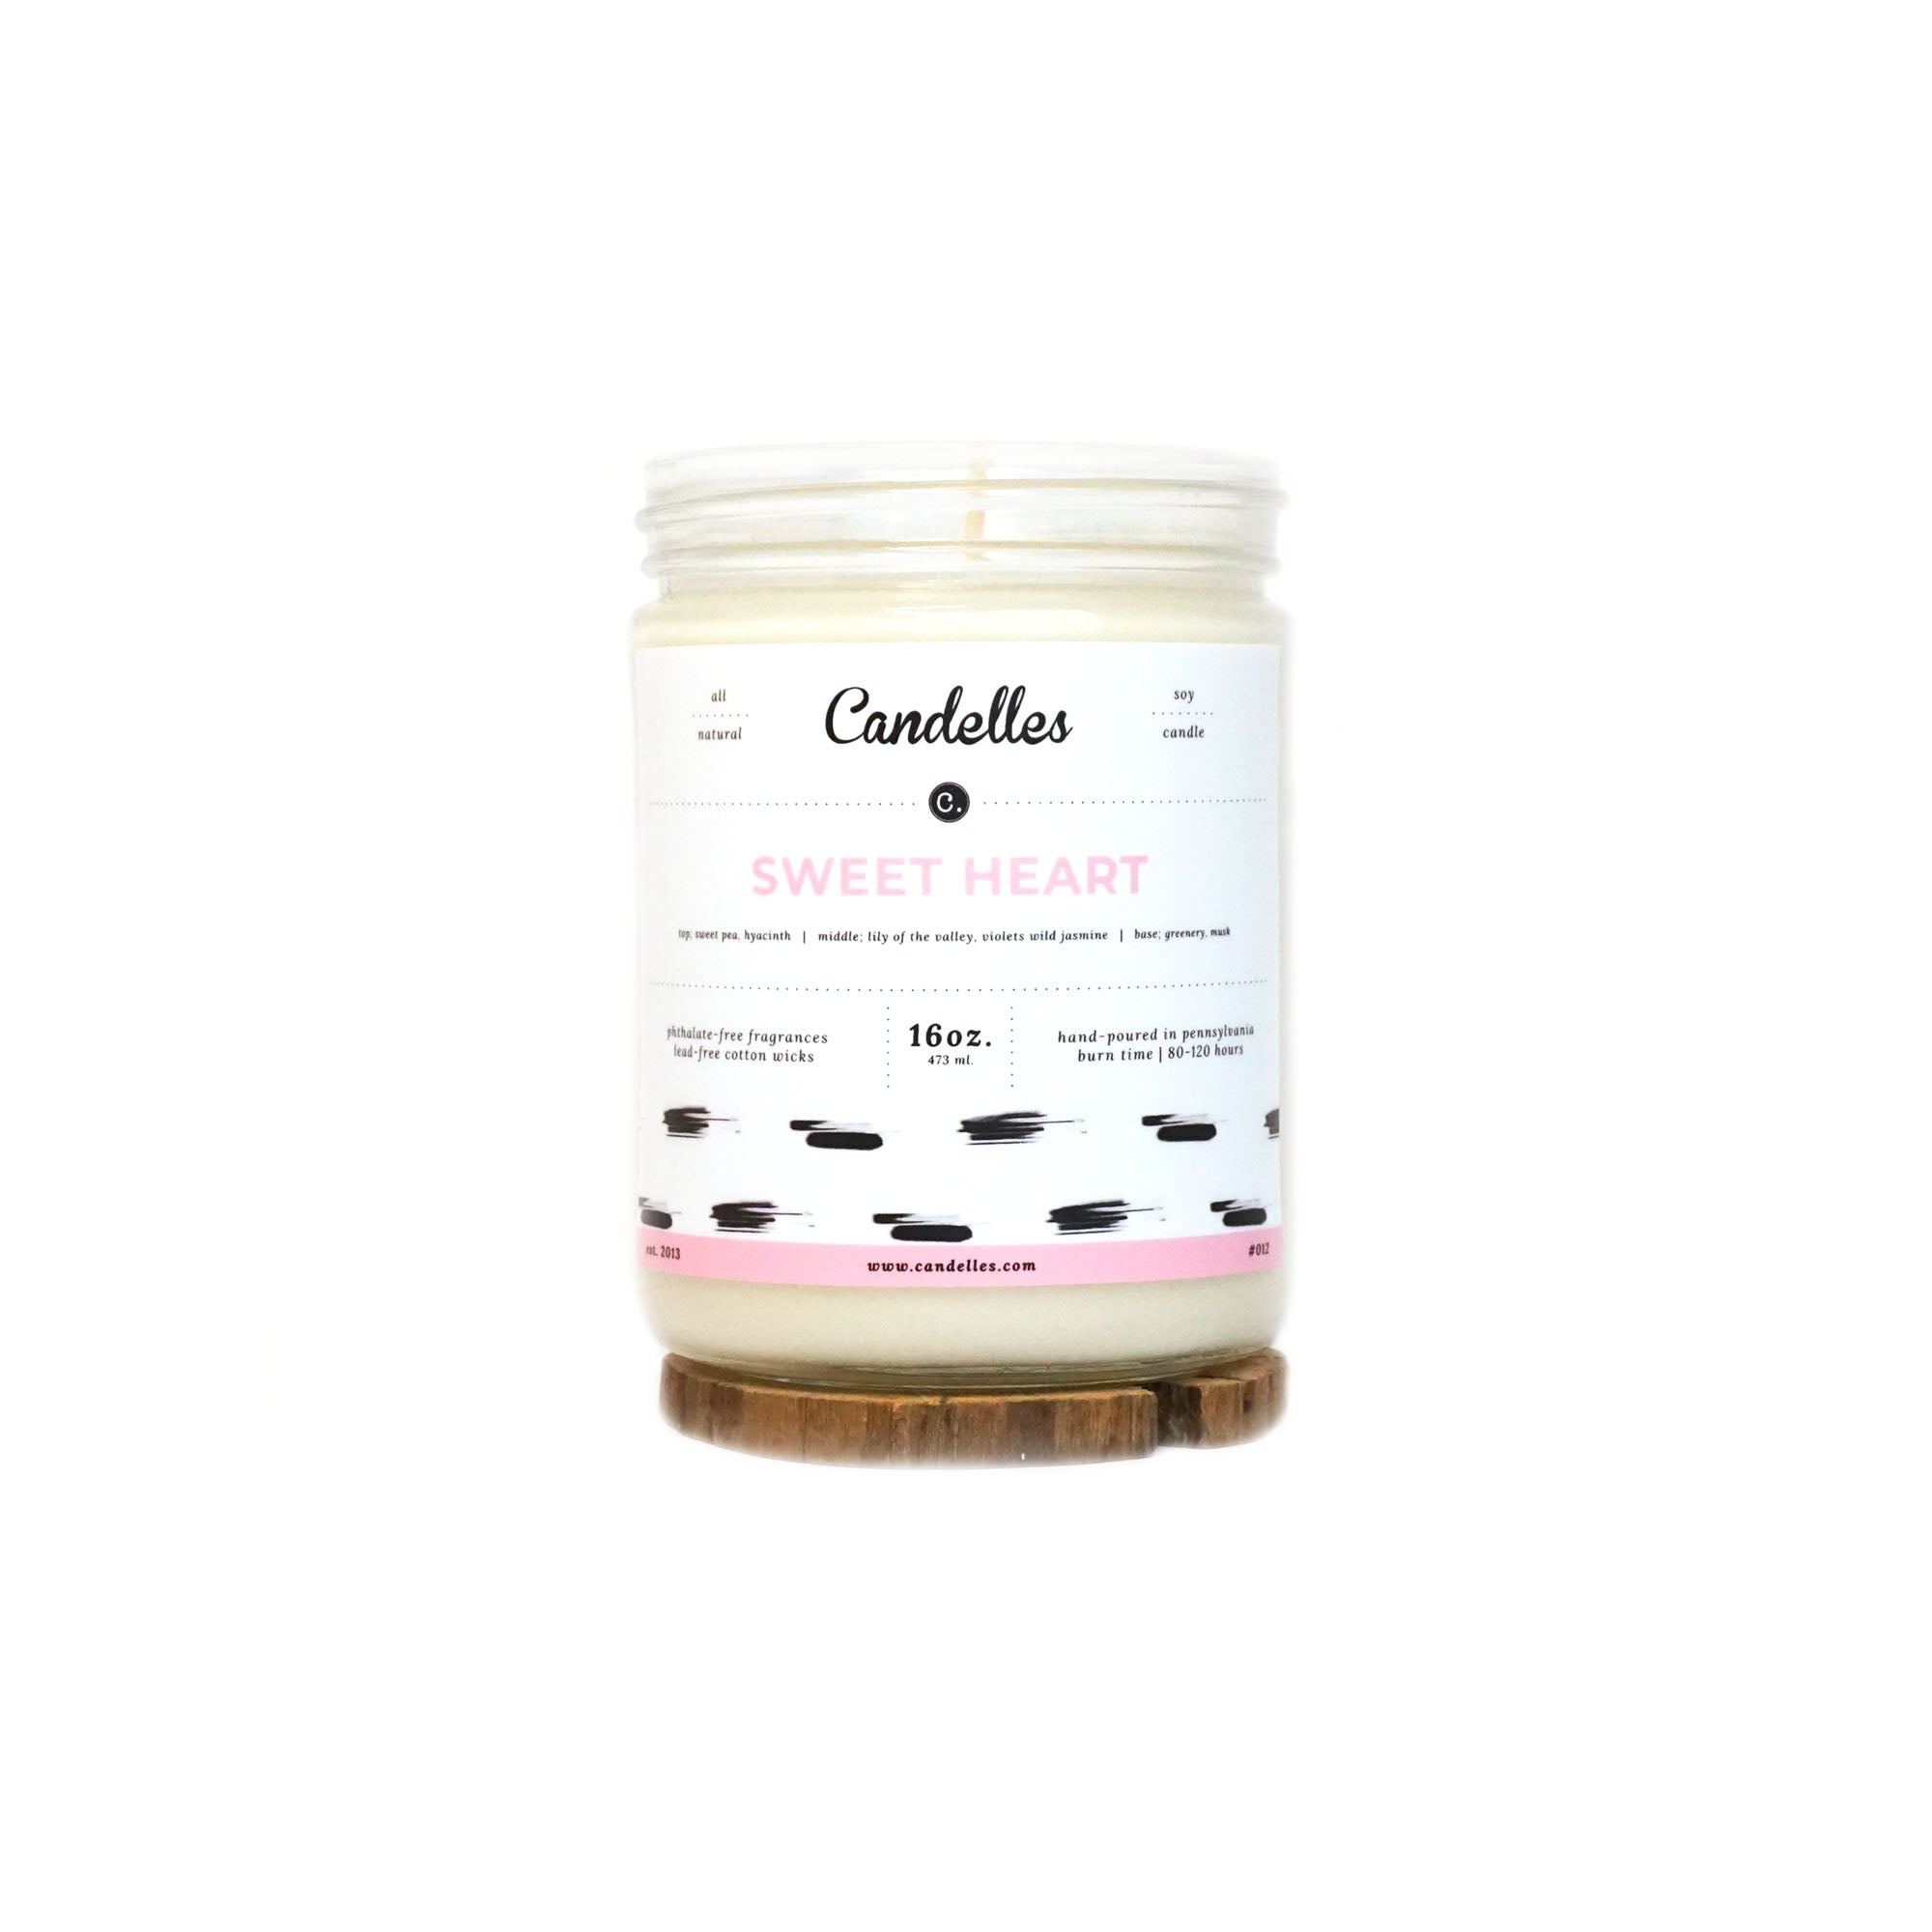 16oz Soy Candle - Sweet Heart